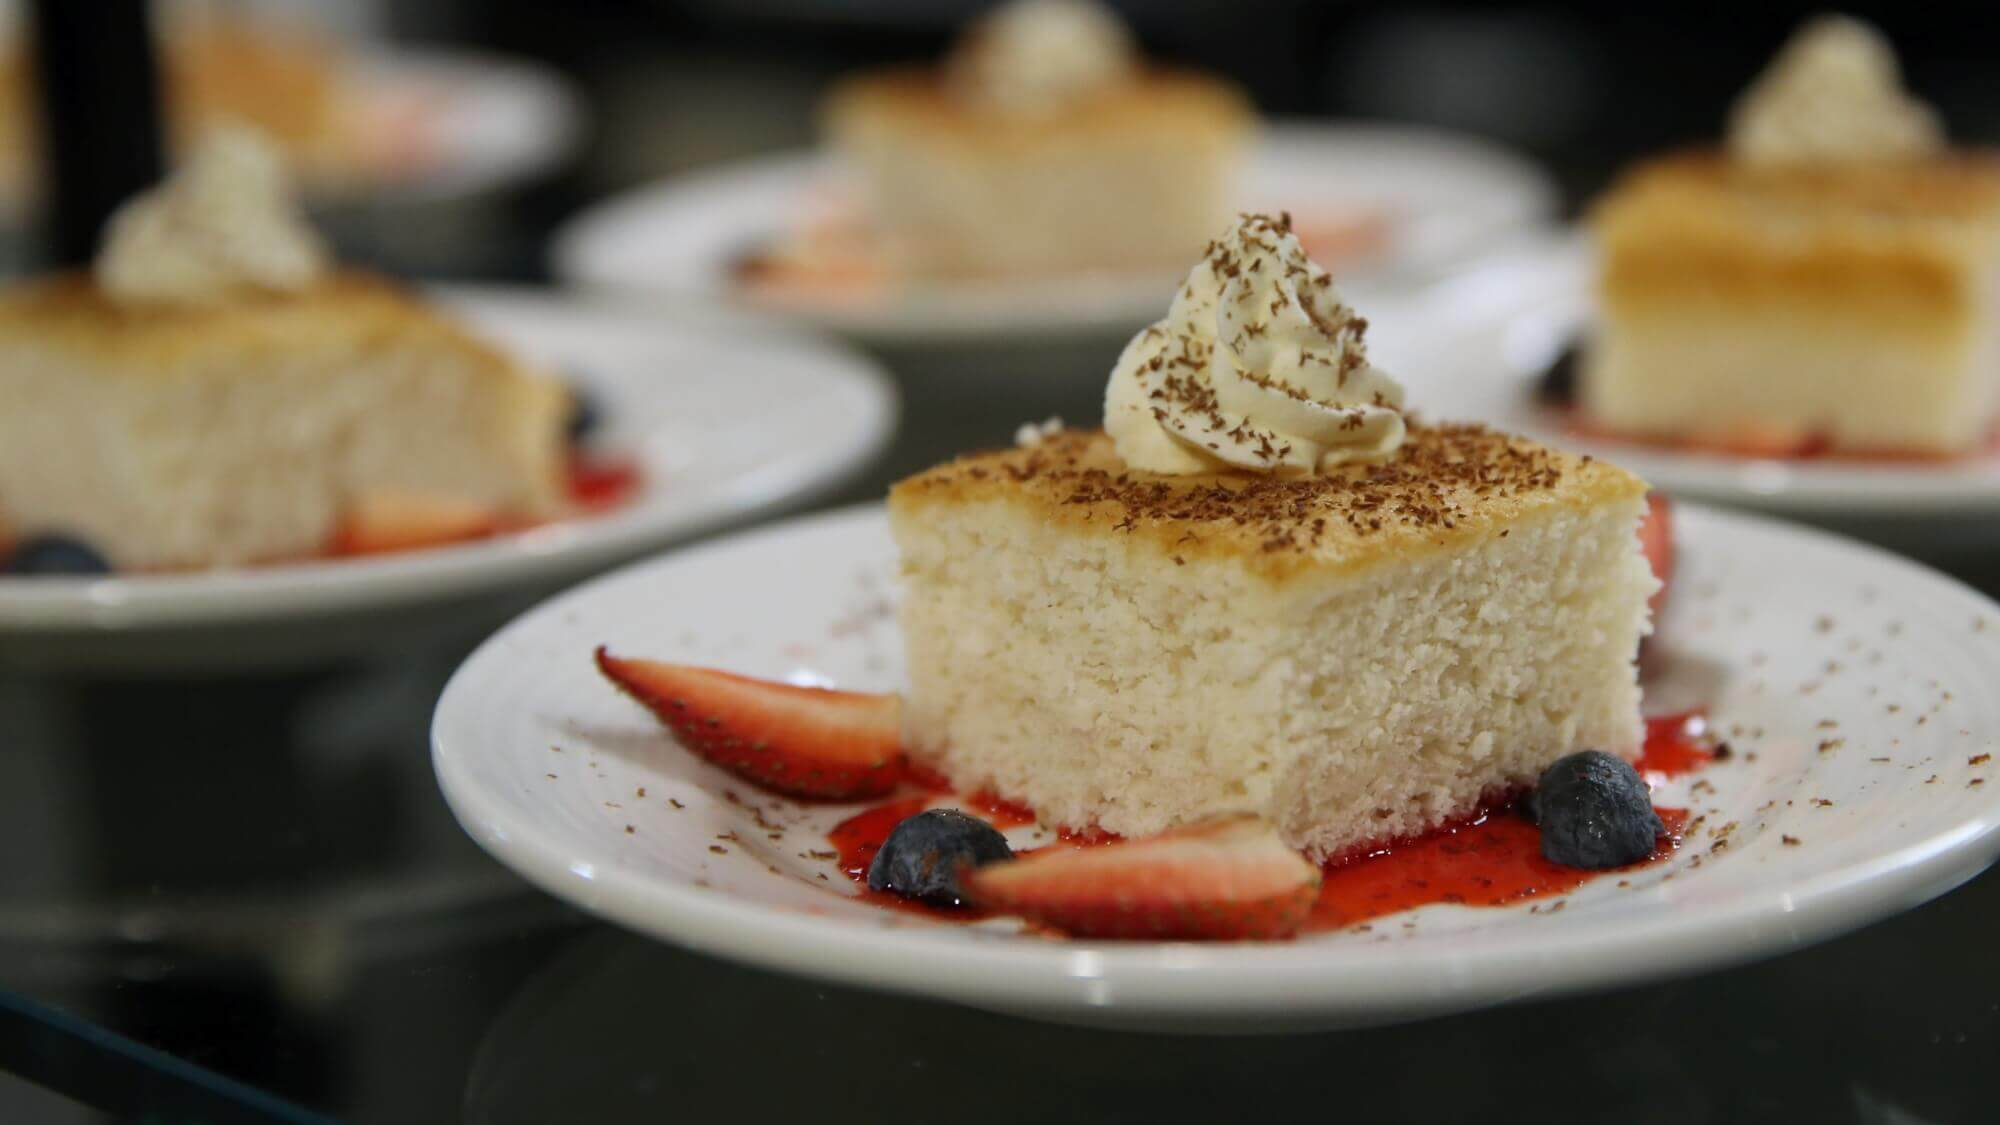 A delectable strawberry shortcake dessert is one of the many delights to experience at Lake Forest Village.